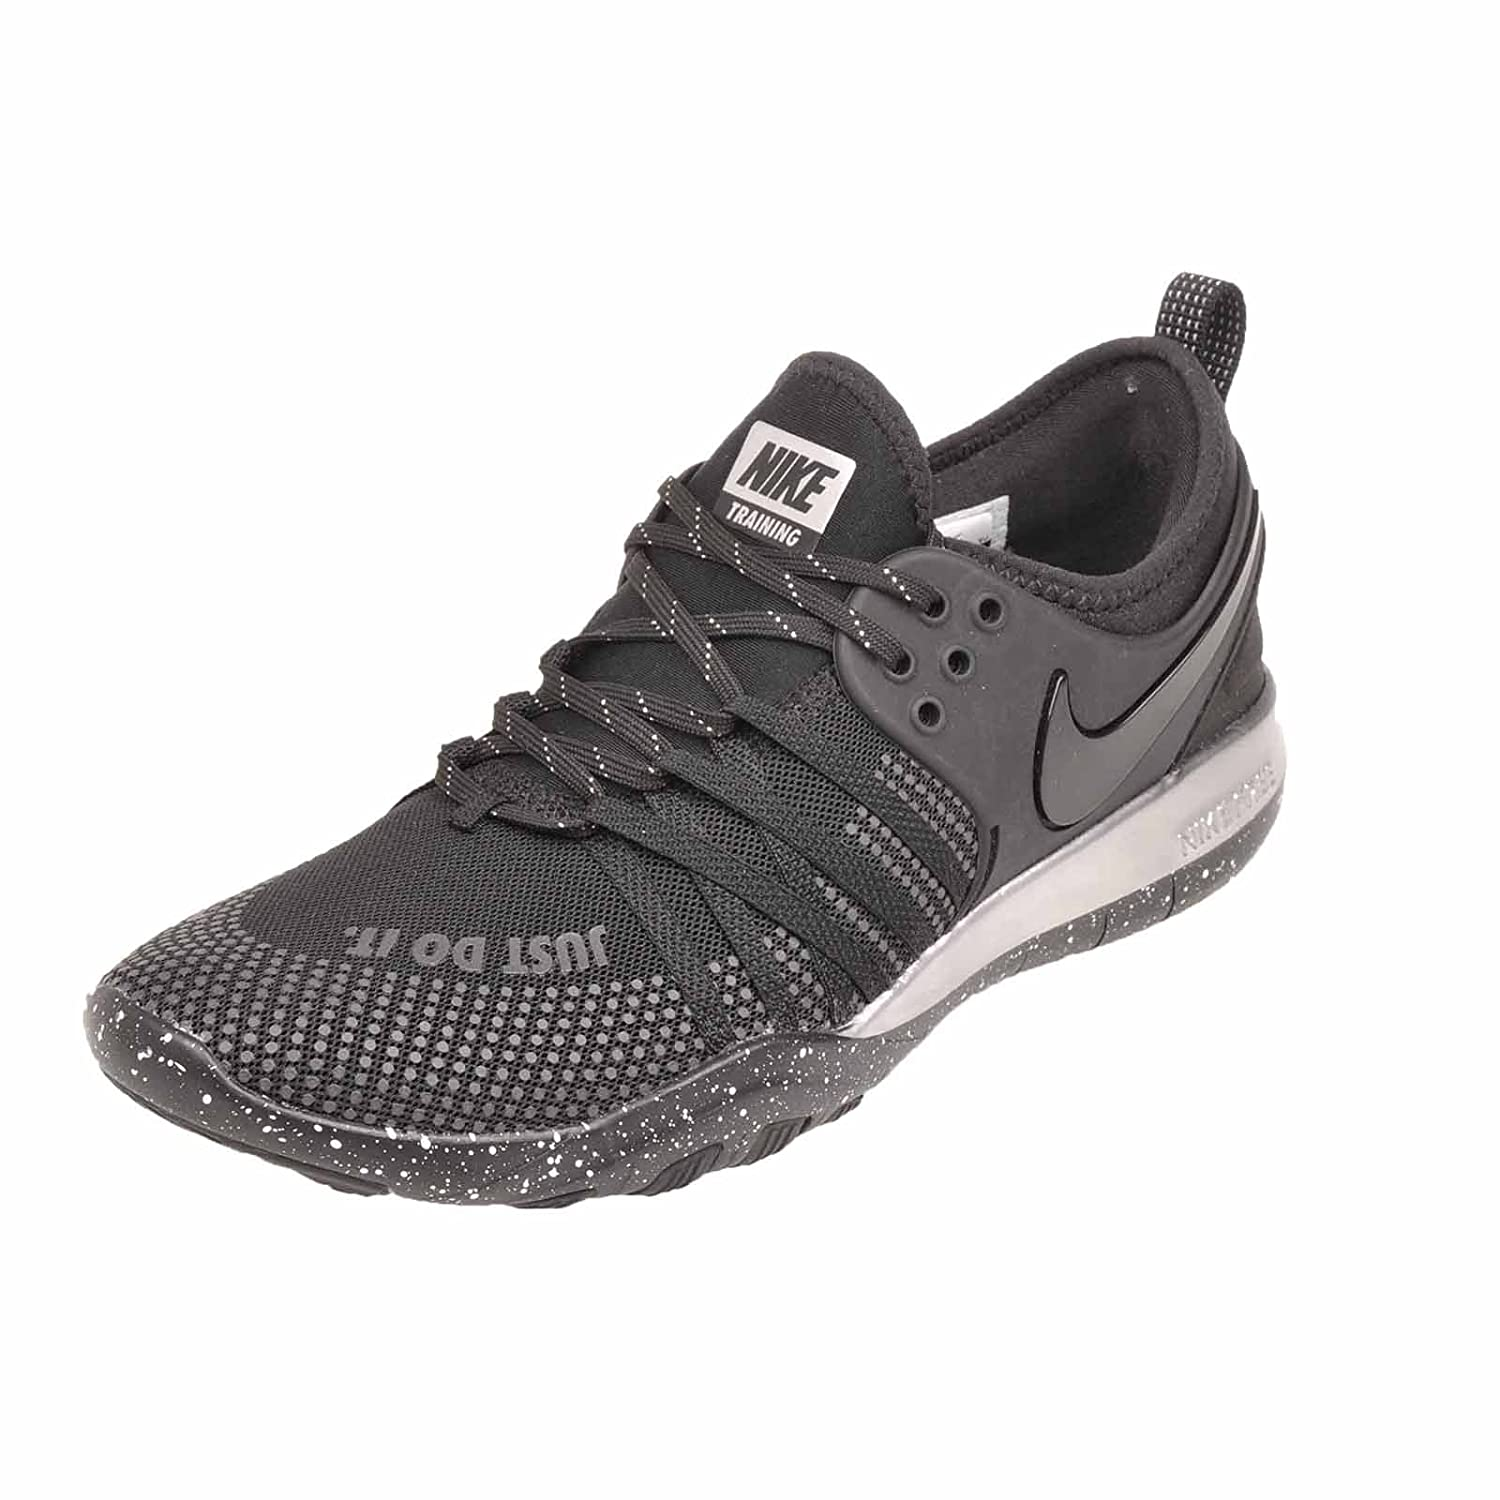 NIKE Womens Free TR 7 Selfie Low Top Lace up Running Sneaker B071LN4C3G 9 B(M) US|Black/Chrome/Black